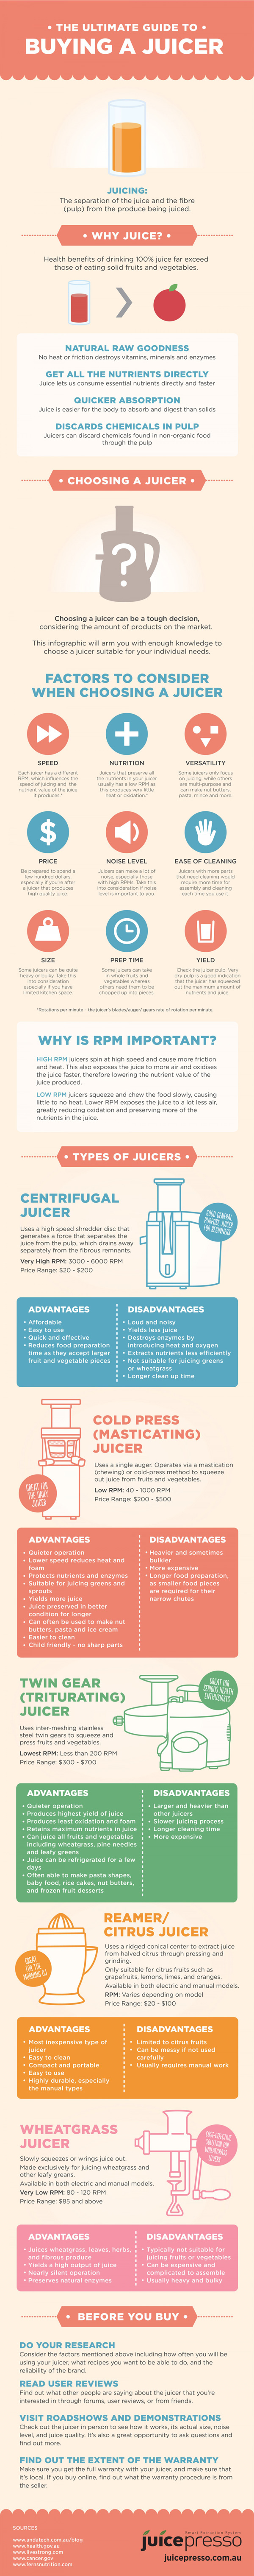 Ultimate Juicer Buying Guide